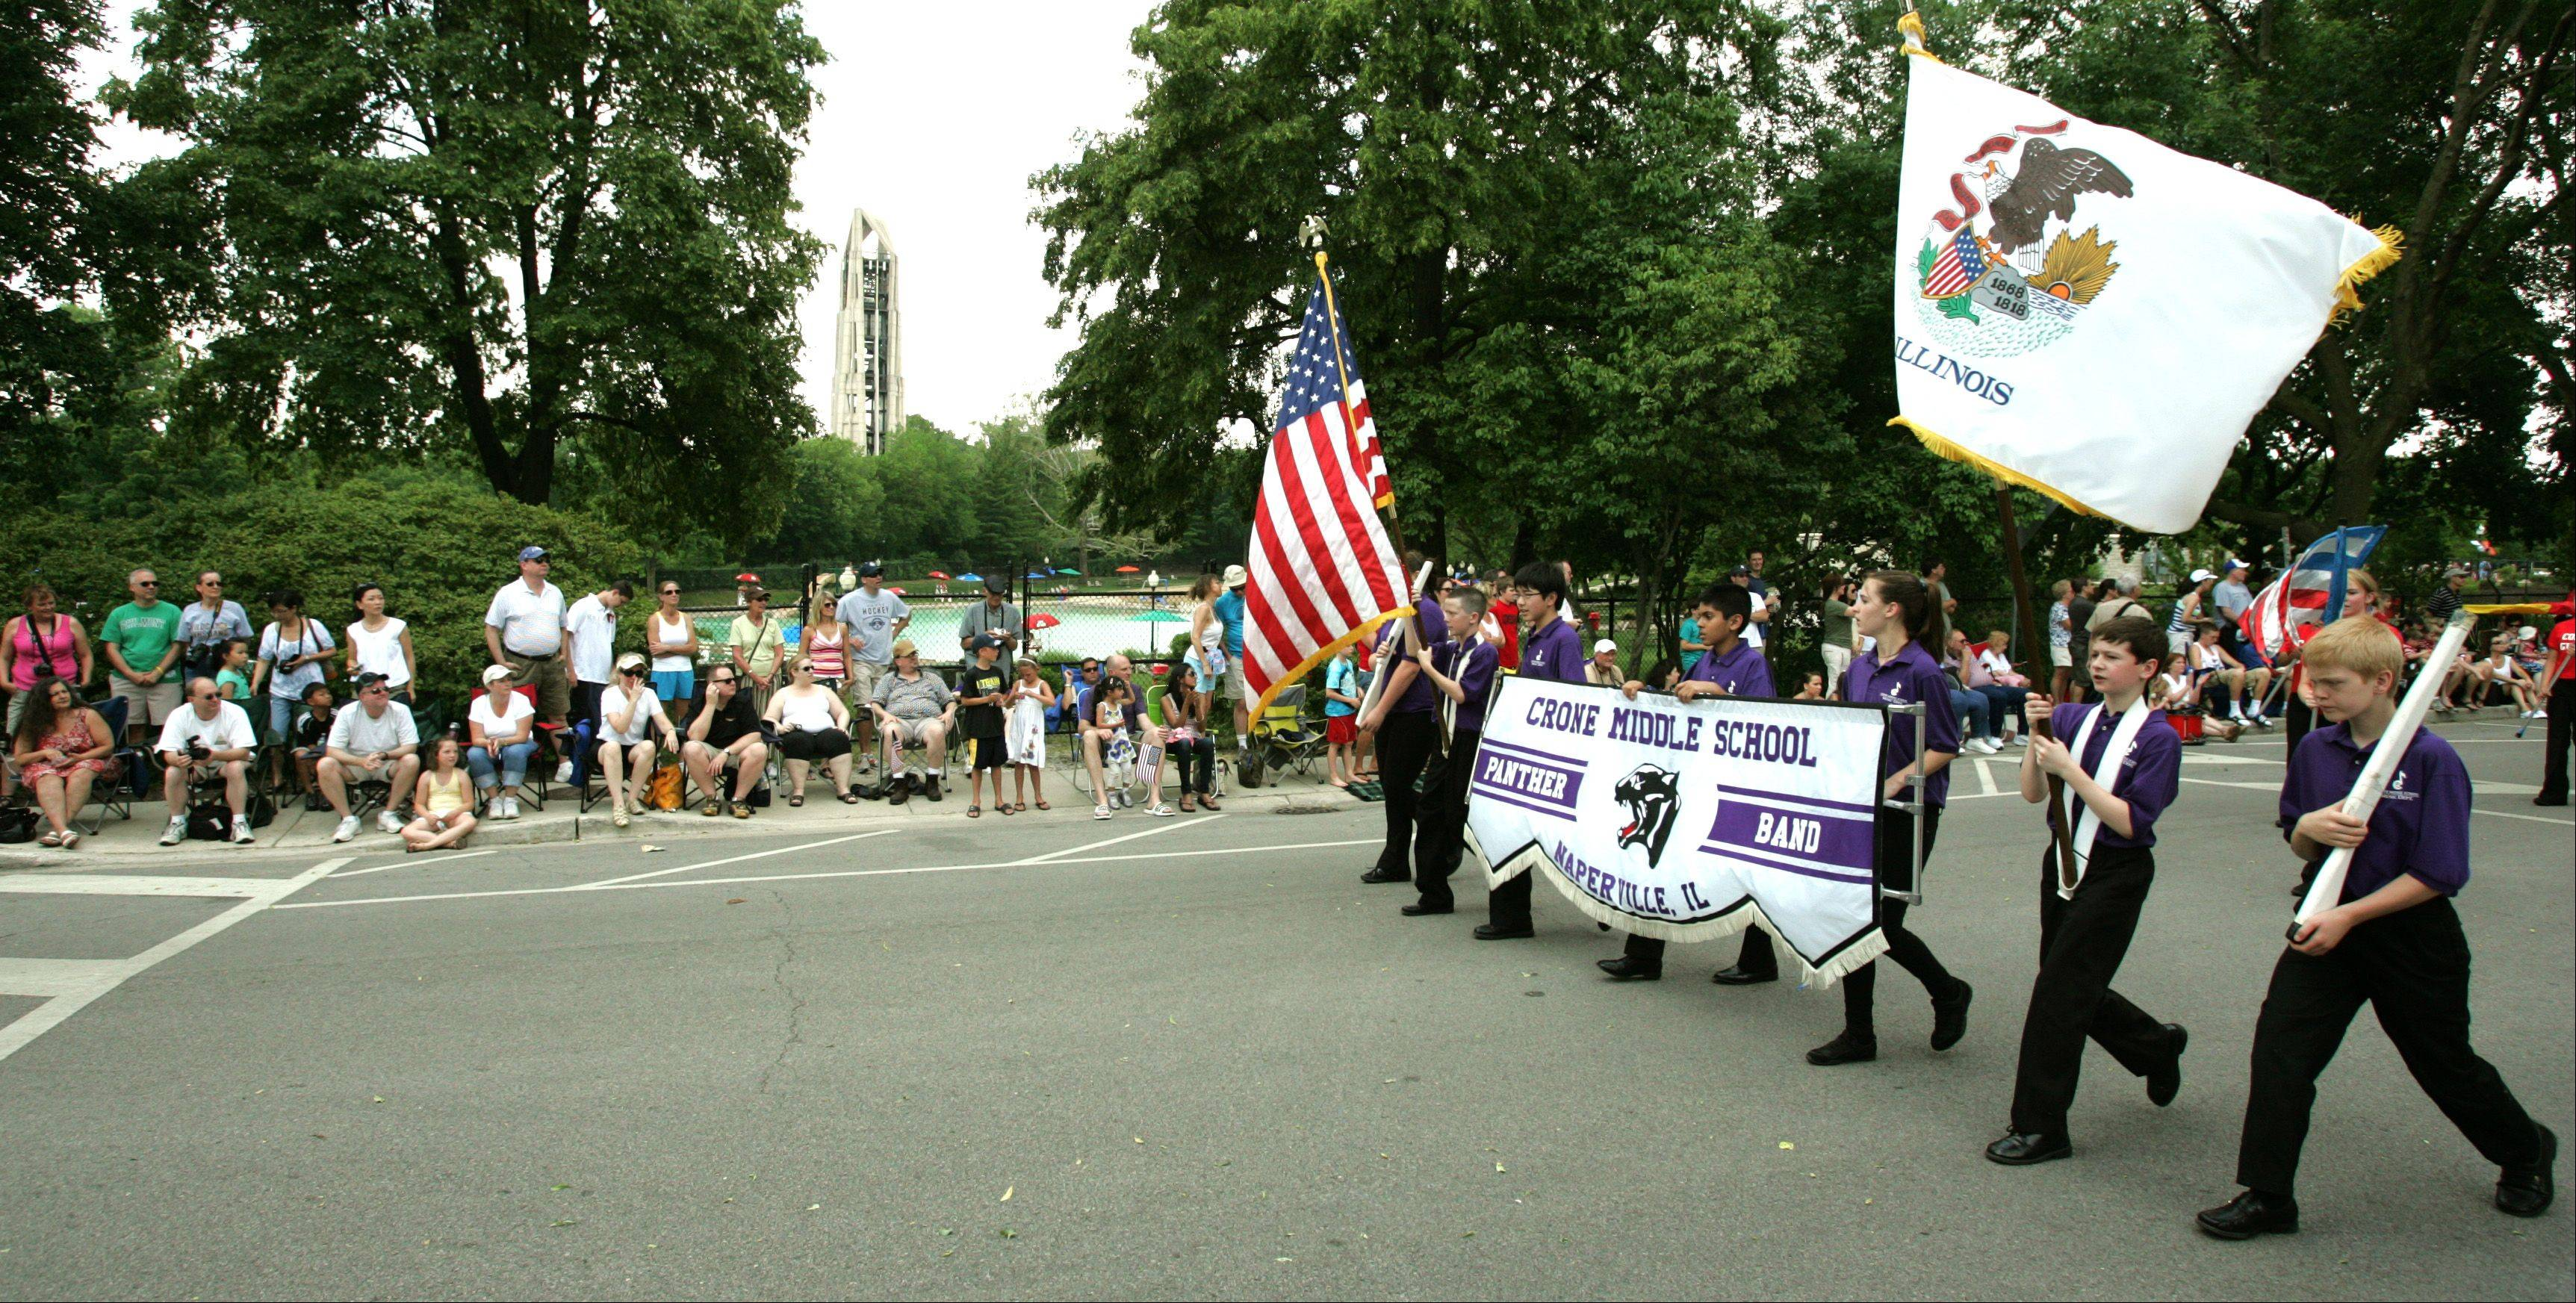 Members of the Crone Middle School band march in the Naperville Memorial Day parade.